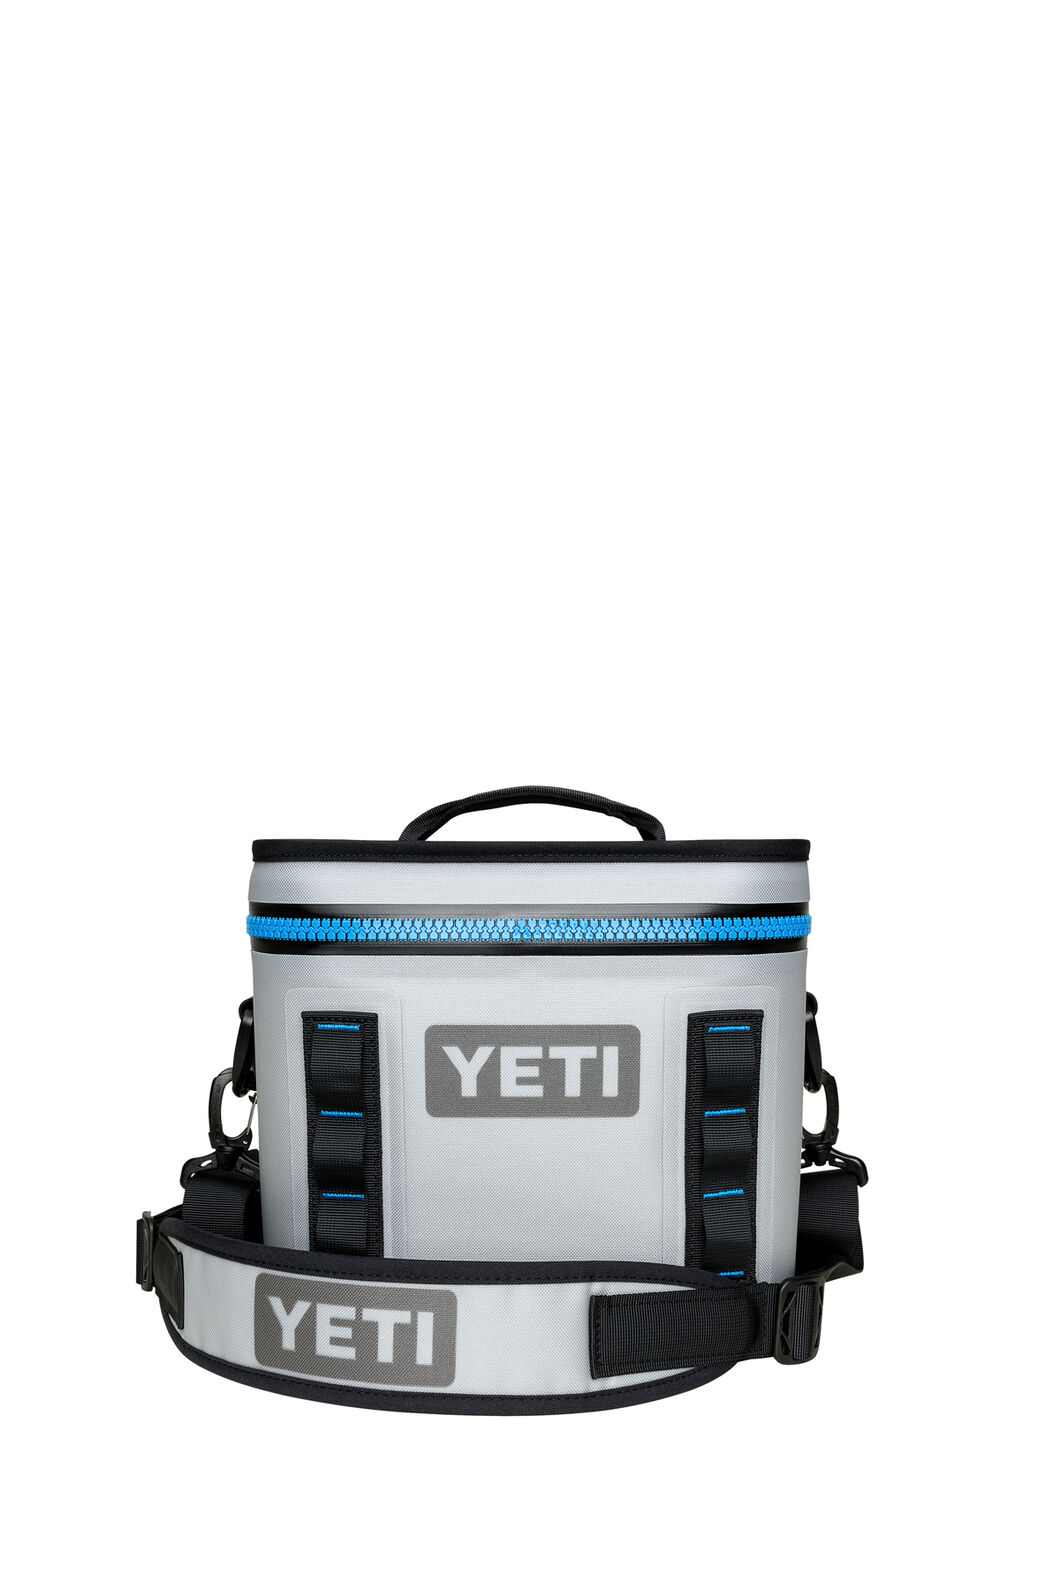 YETI® Hopper Flip 8 Soft Cooler Bag, Fog Grey, hi-res